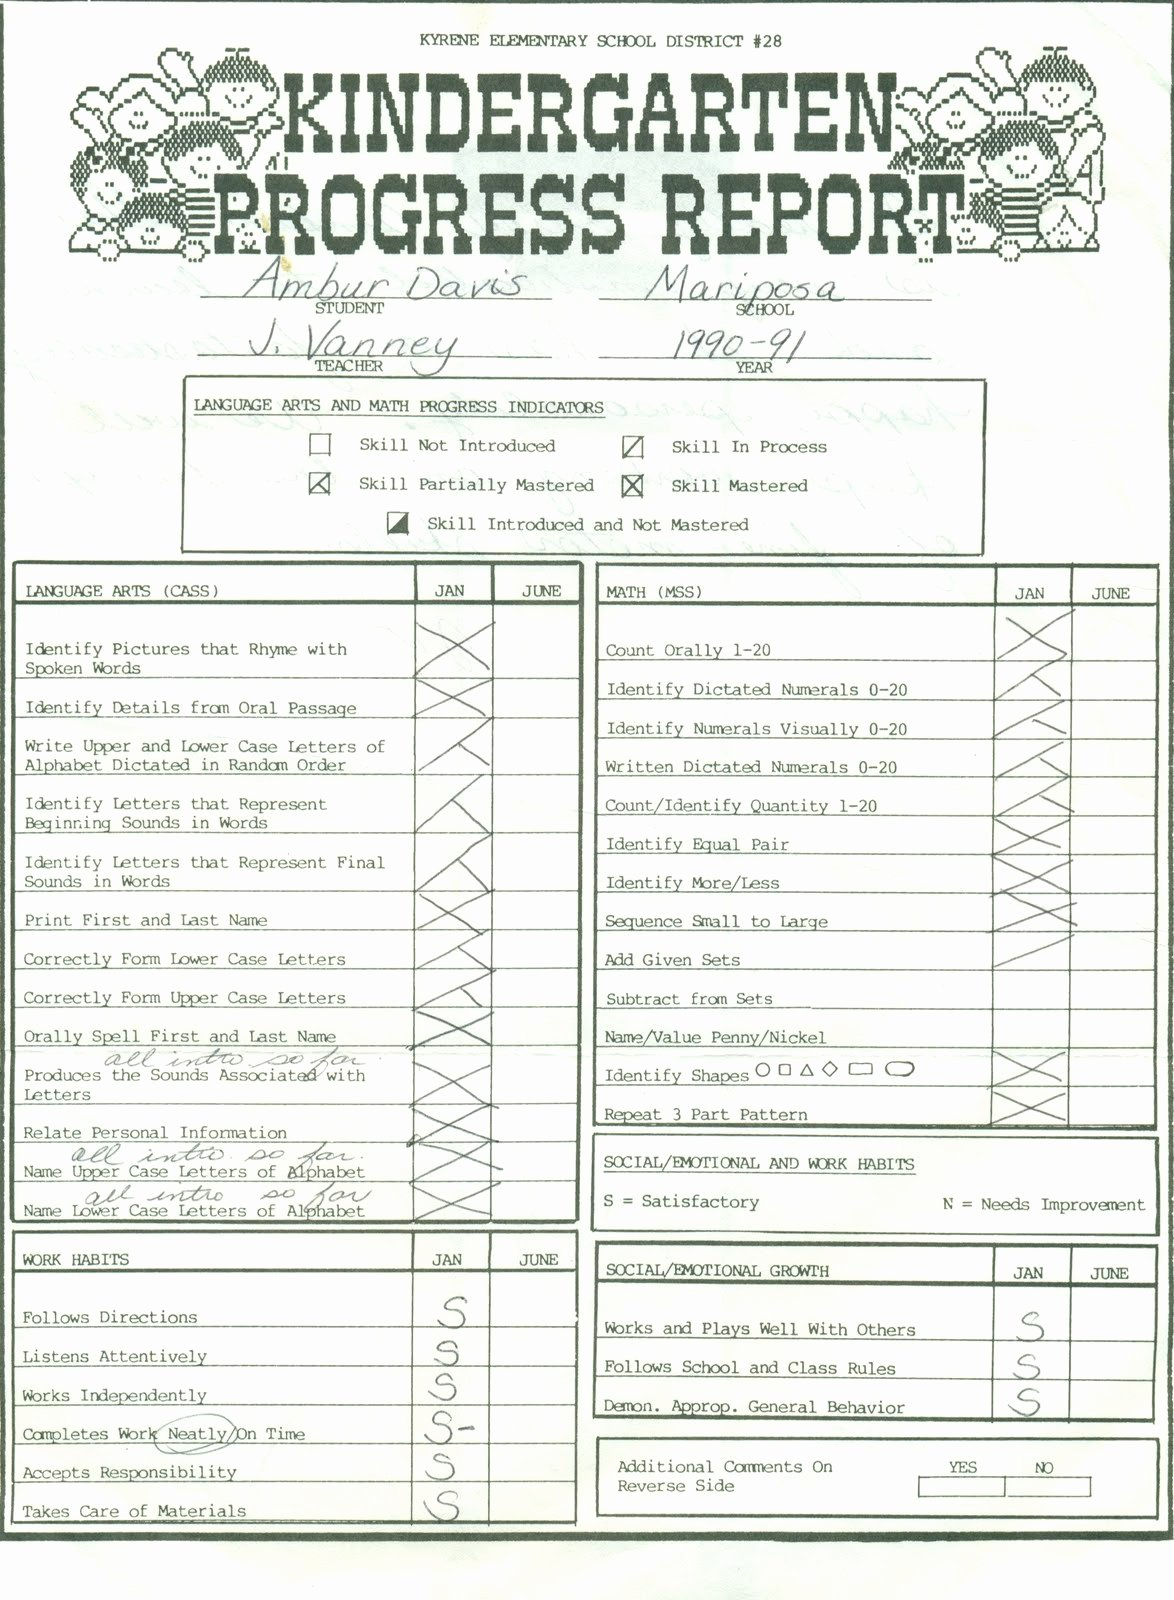 Kindergarten Progress Report Template Elegant Sample Progress Report for Students Ments Line